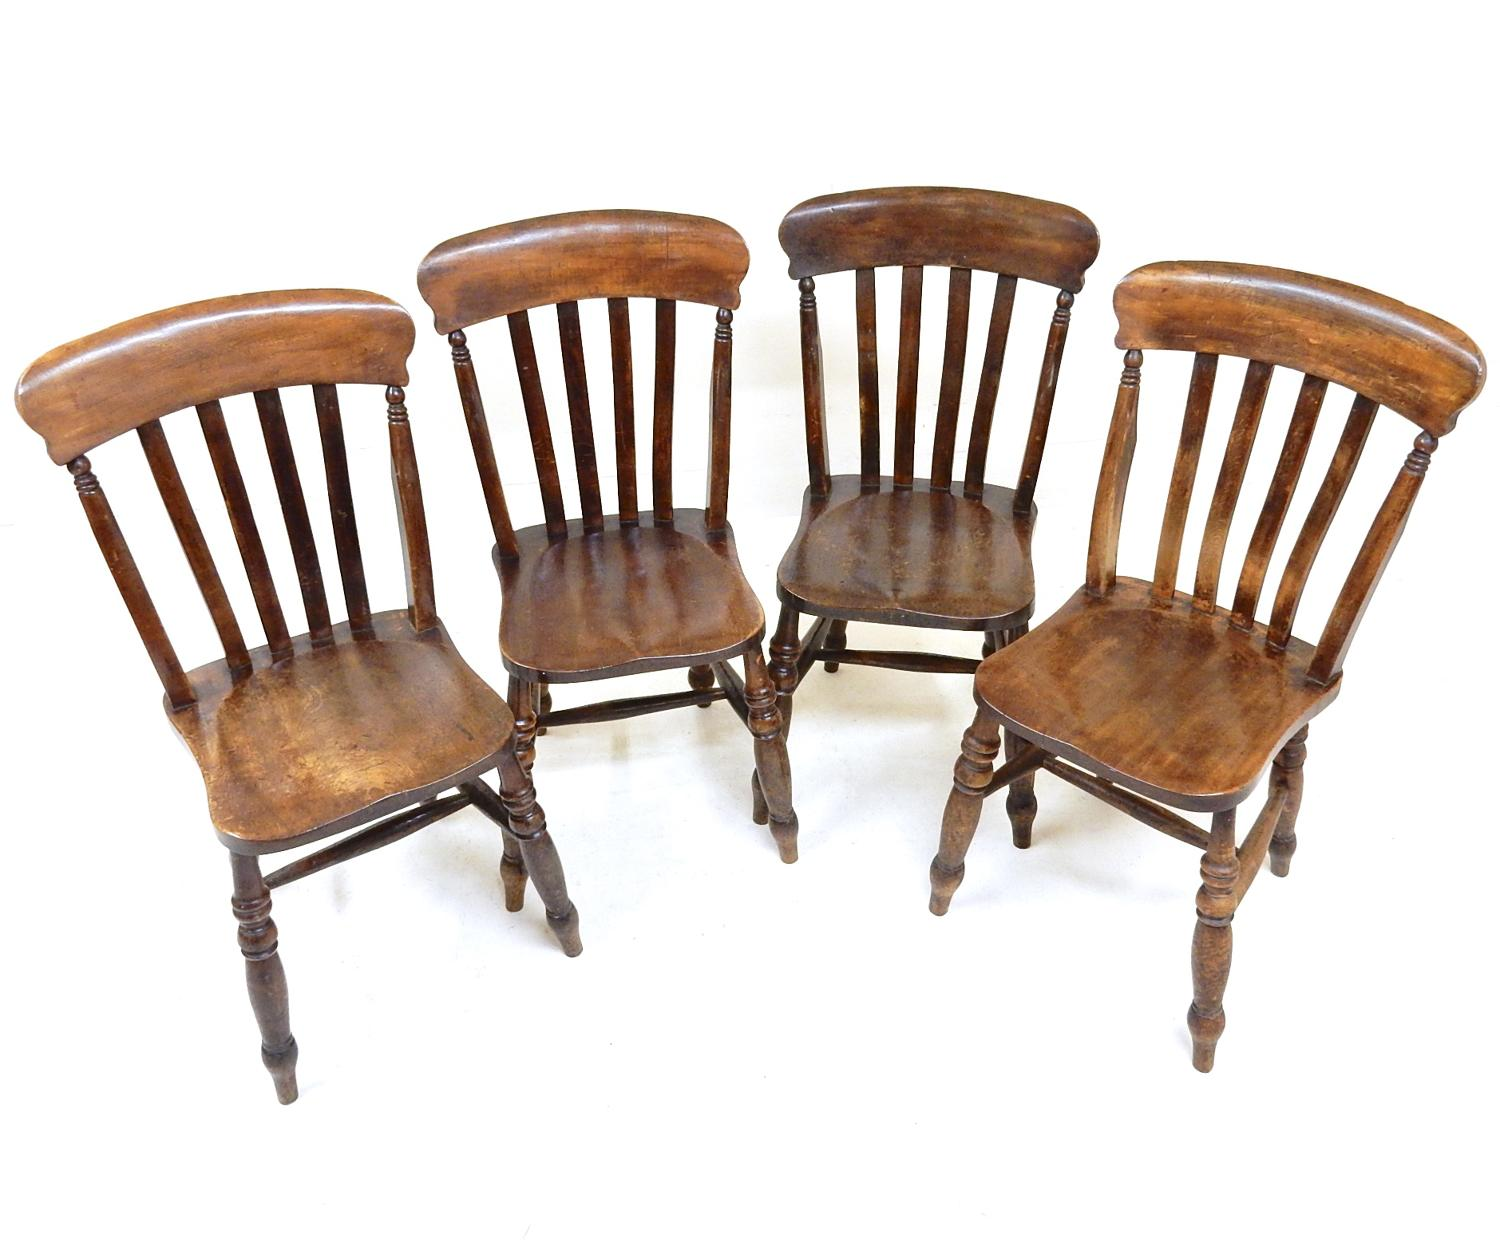 Antique Kitchen Dining Chairs in Tables and Chairs